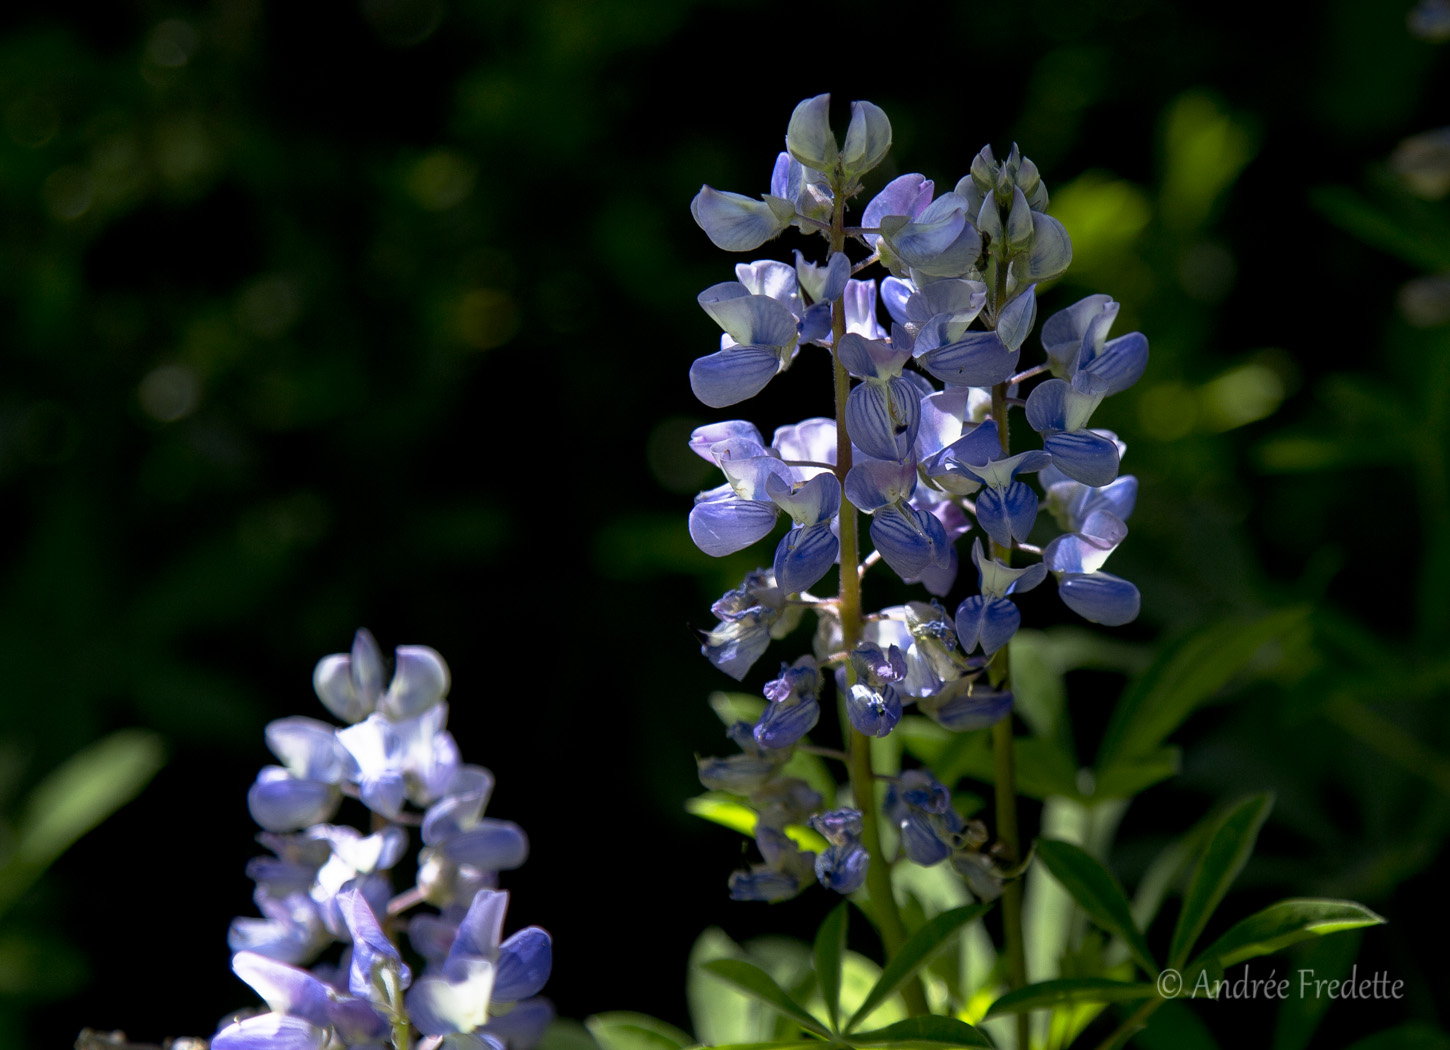 Lupine on the mountain. Photo by Andrée Fredette